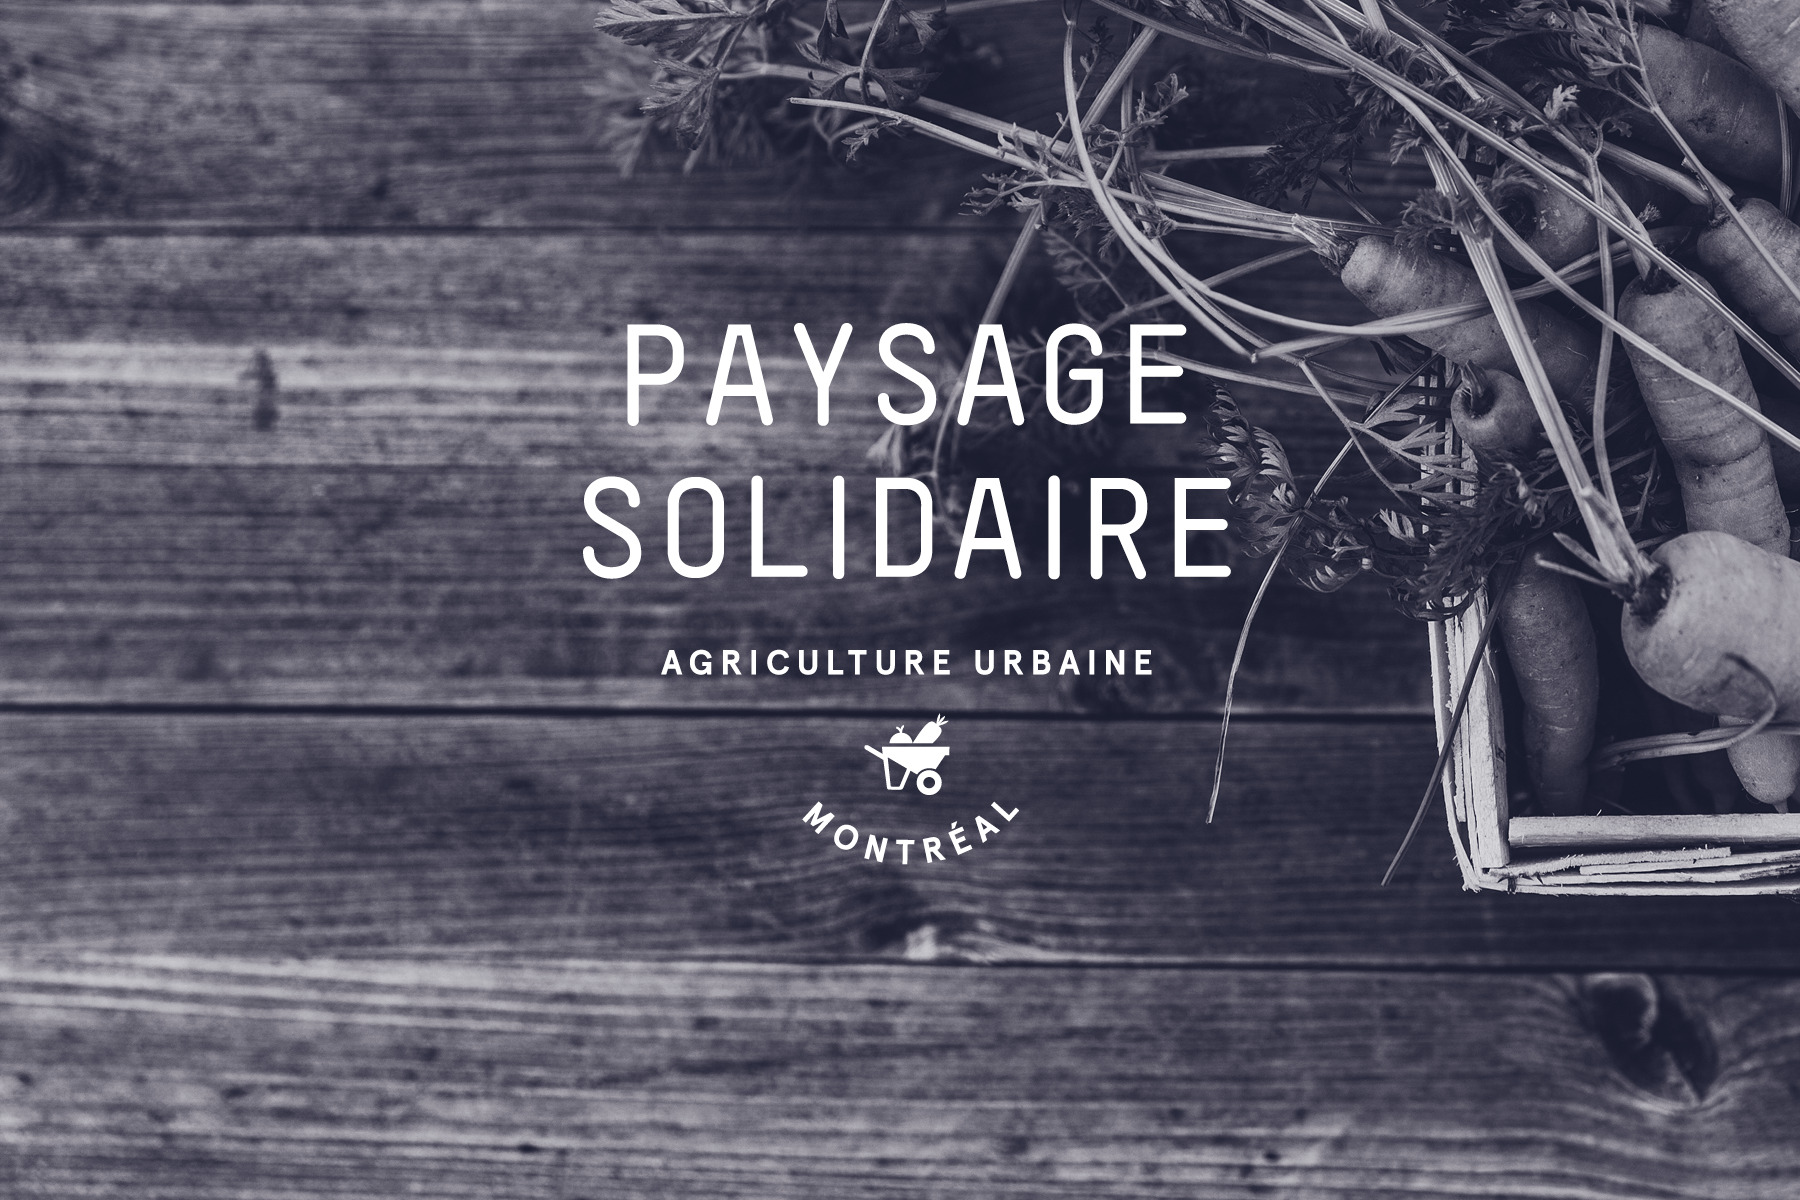 atelier-atoca-paysage-solidaireHR